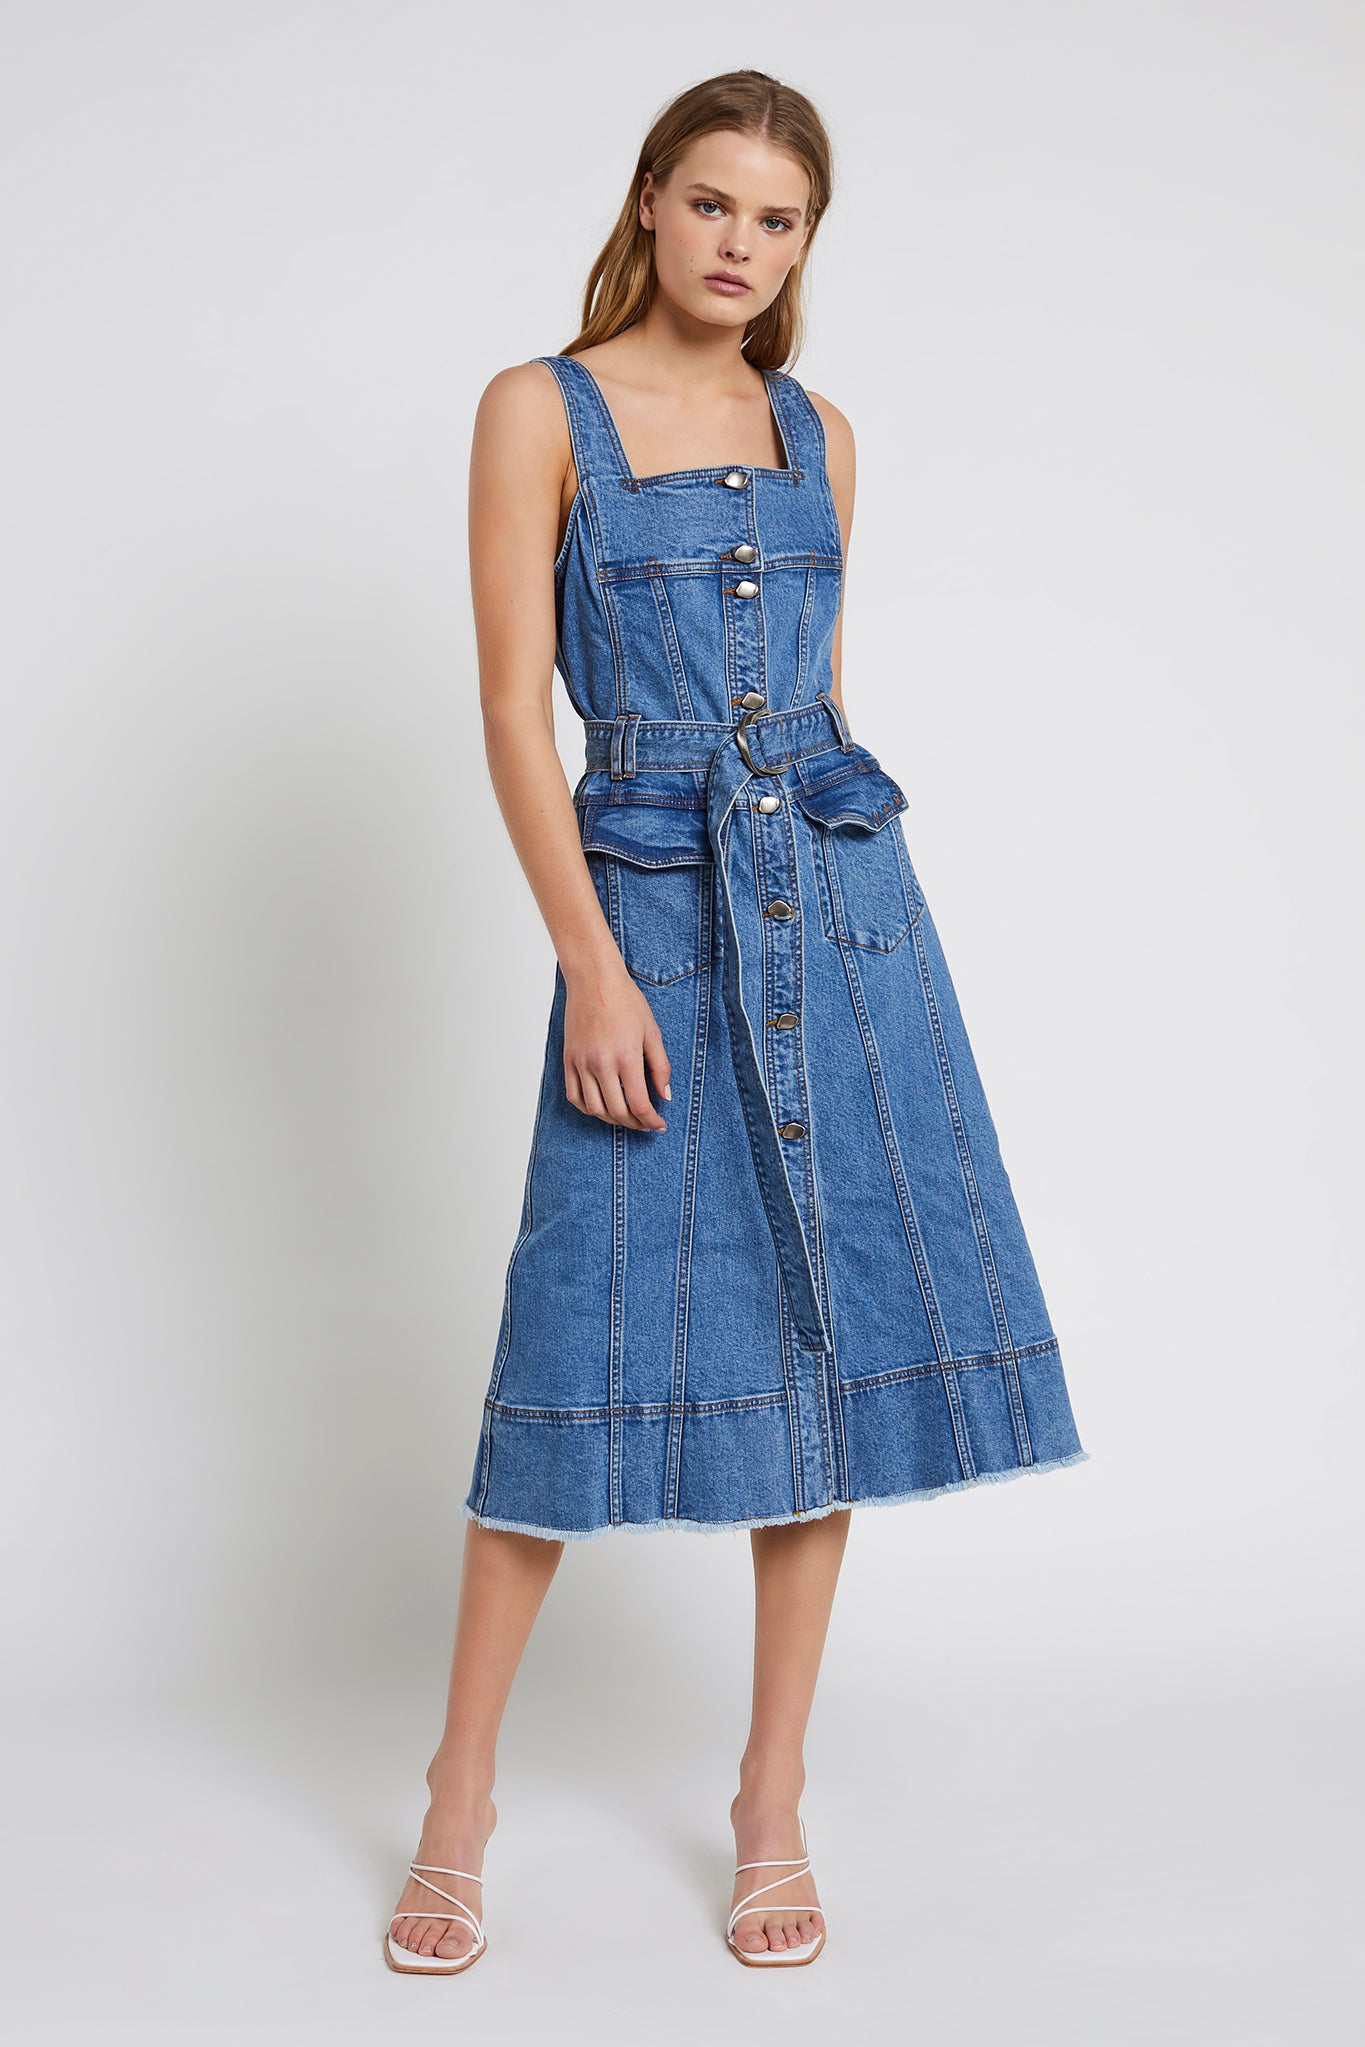 Shore Denim Dress Outfit View